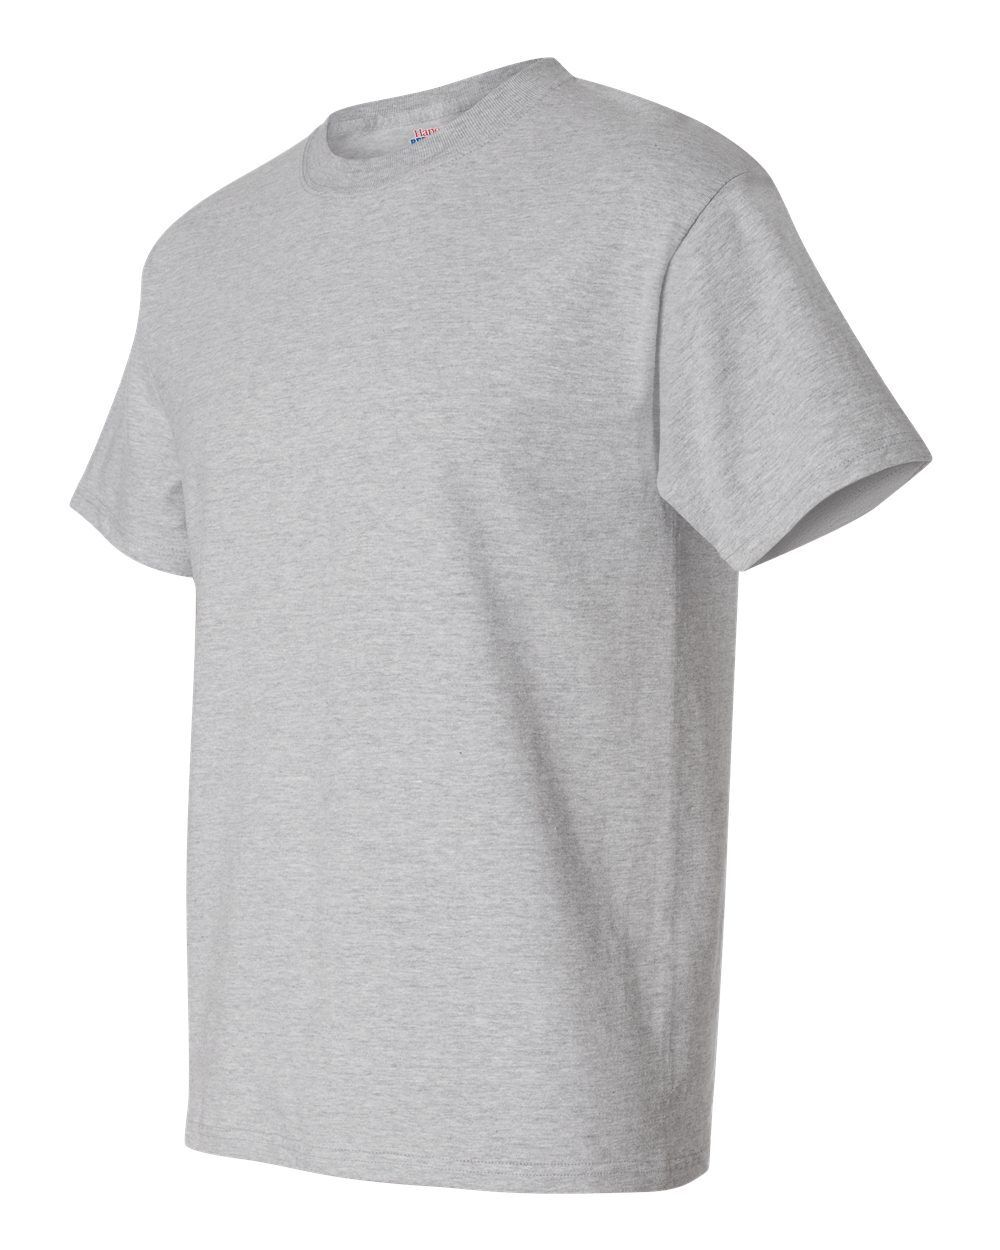 Hanes black t shirts xxl - Click To Enlarge